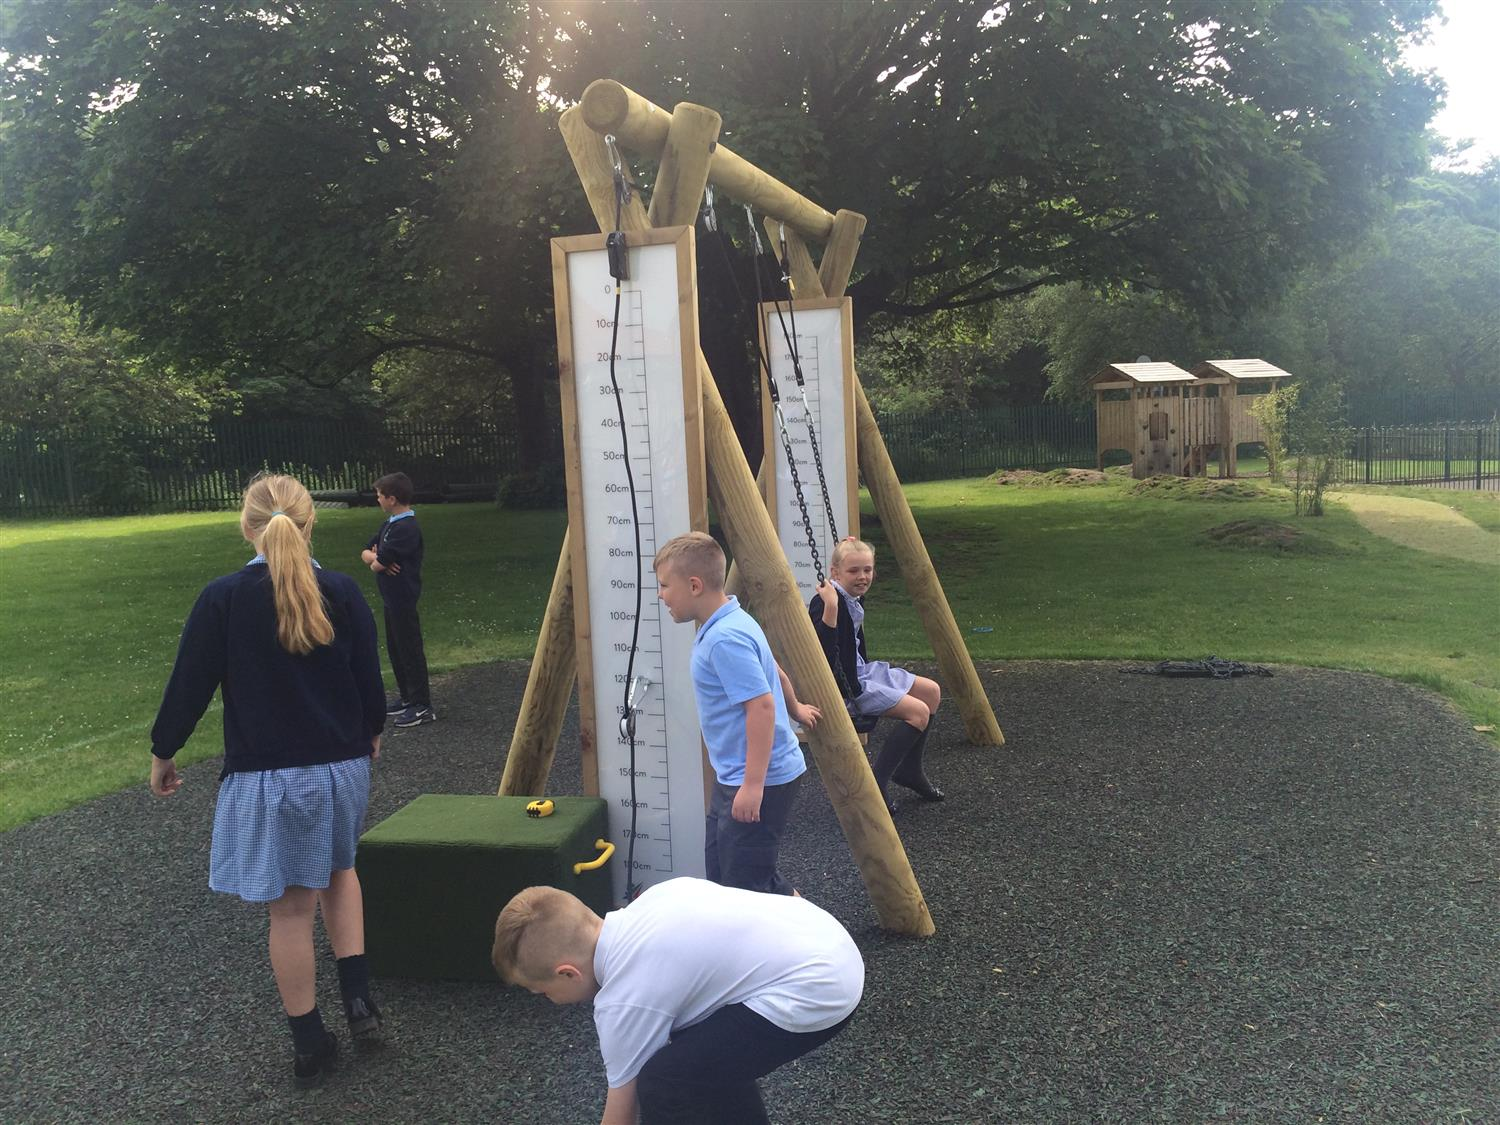 Classroom Experiment Ideas ~ Peel hall school s outdoor science experiment pentagon play